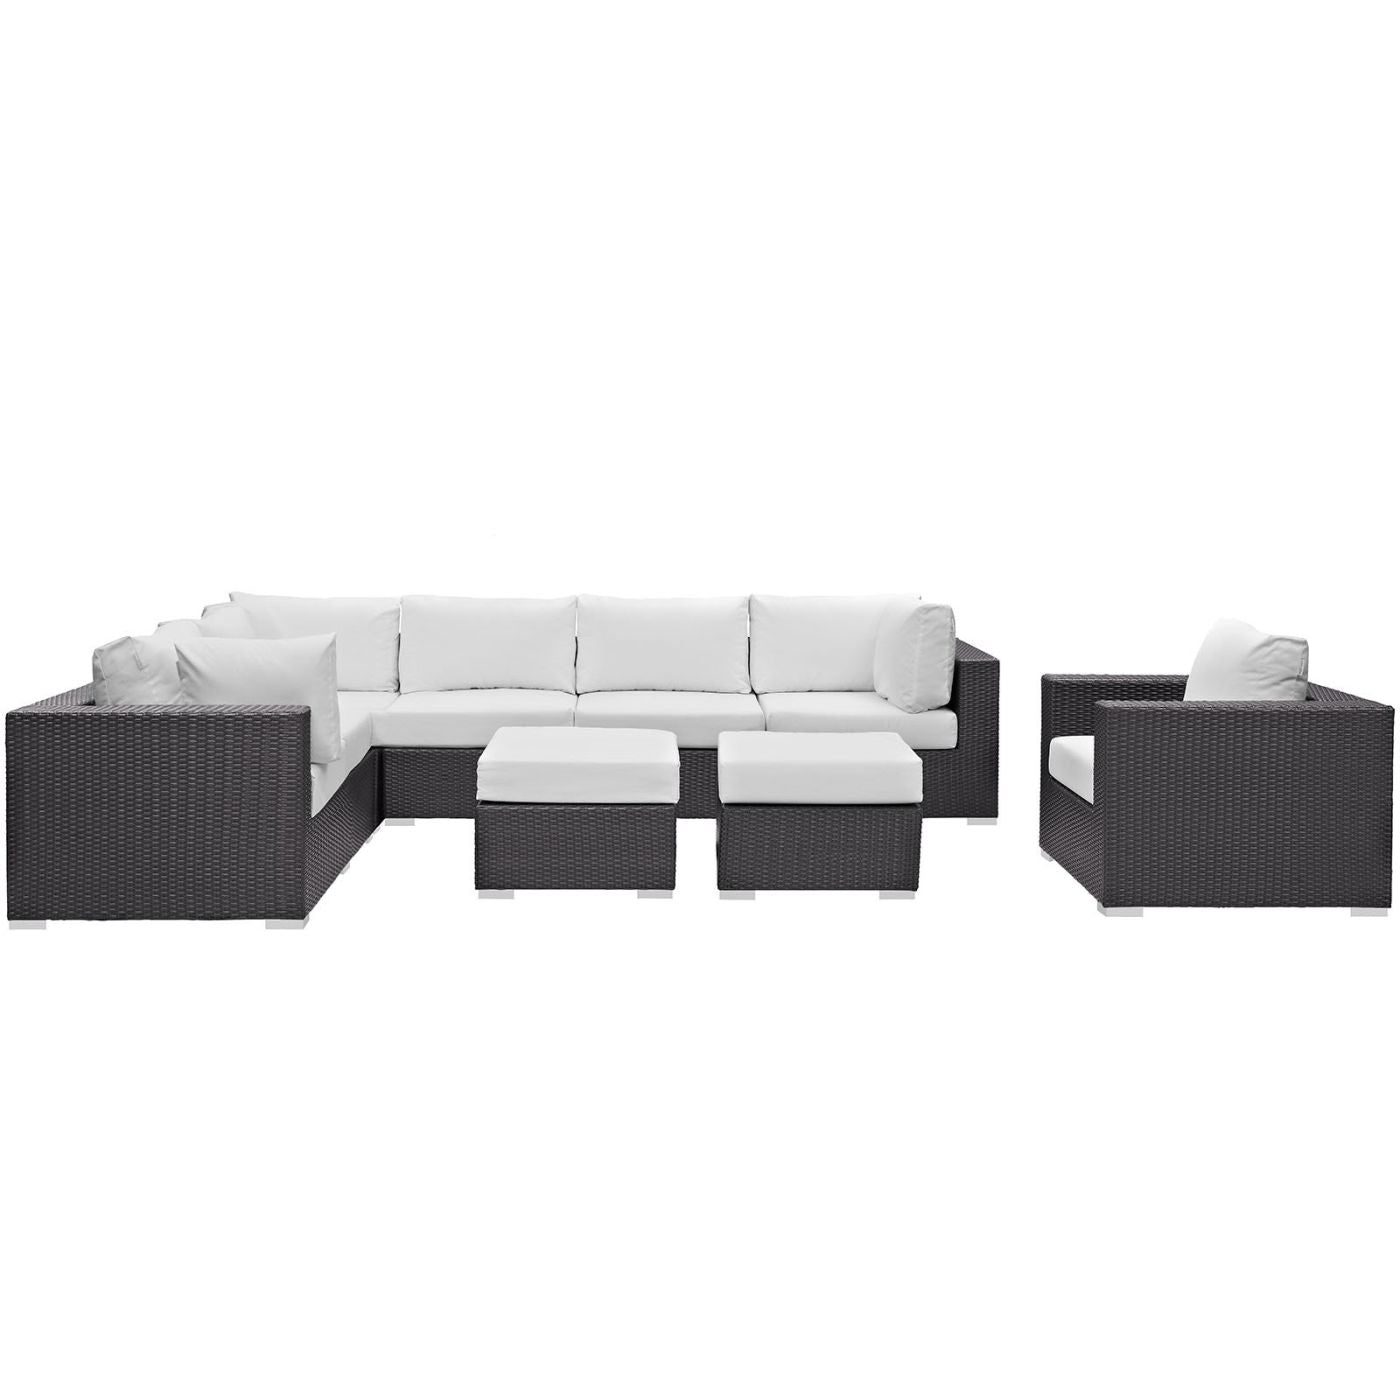 outdoor sale chairs sectional patio of wicker sofa furniture unique ideas